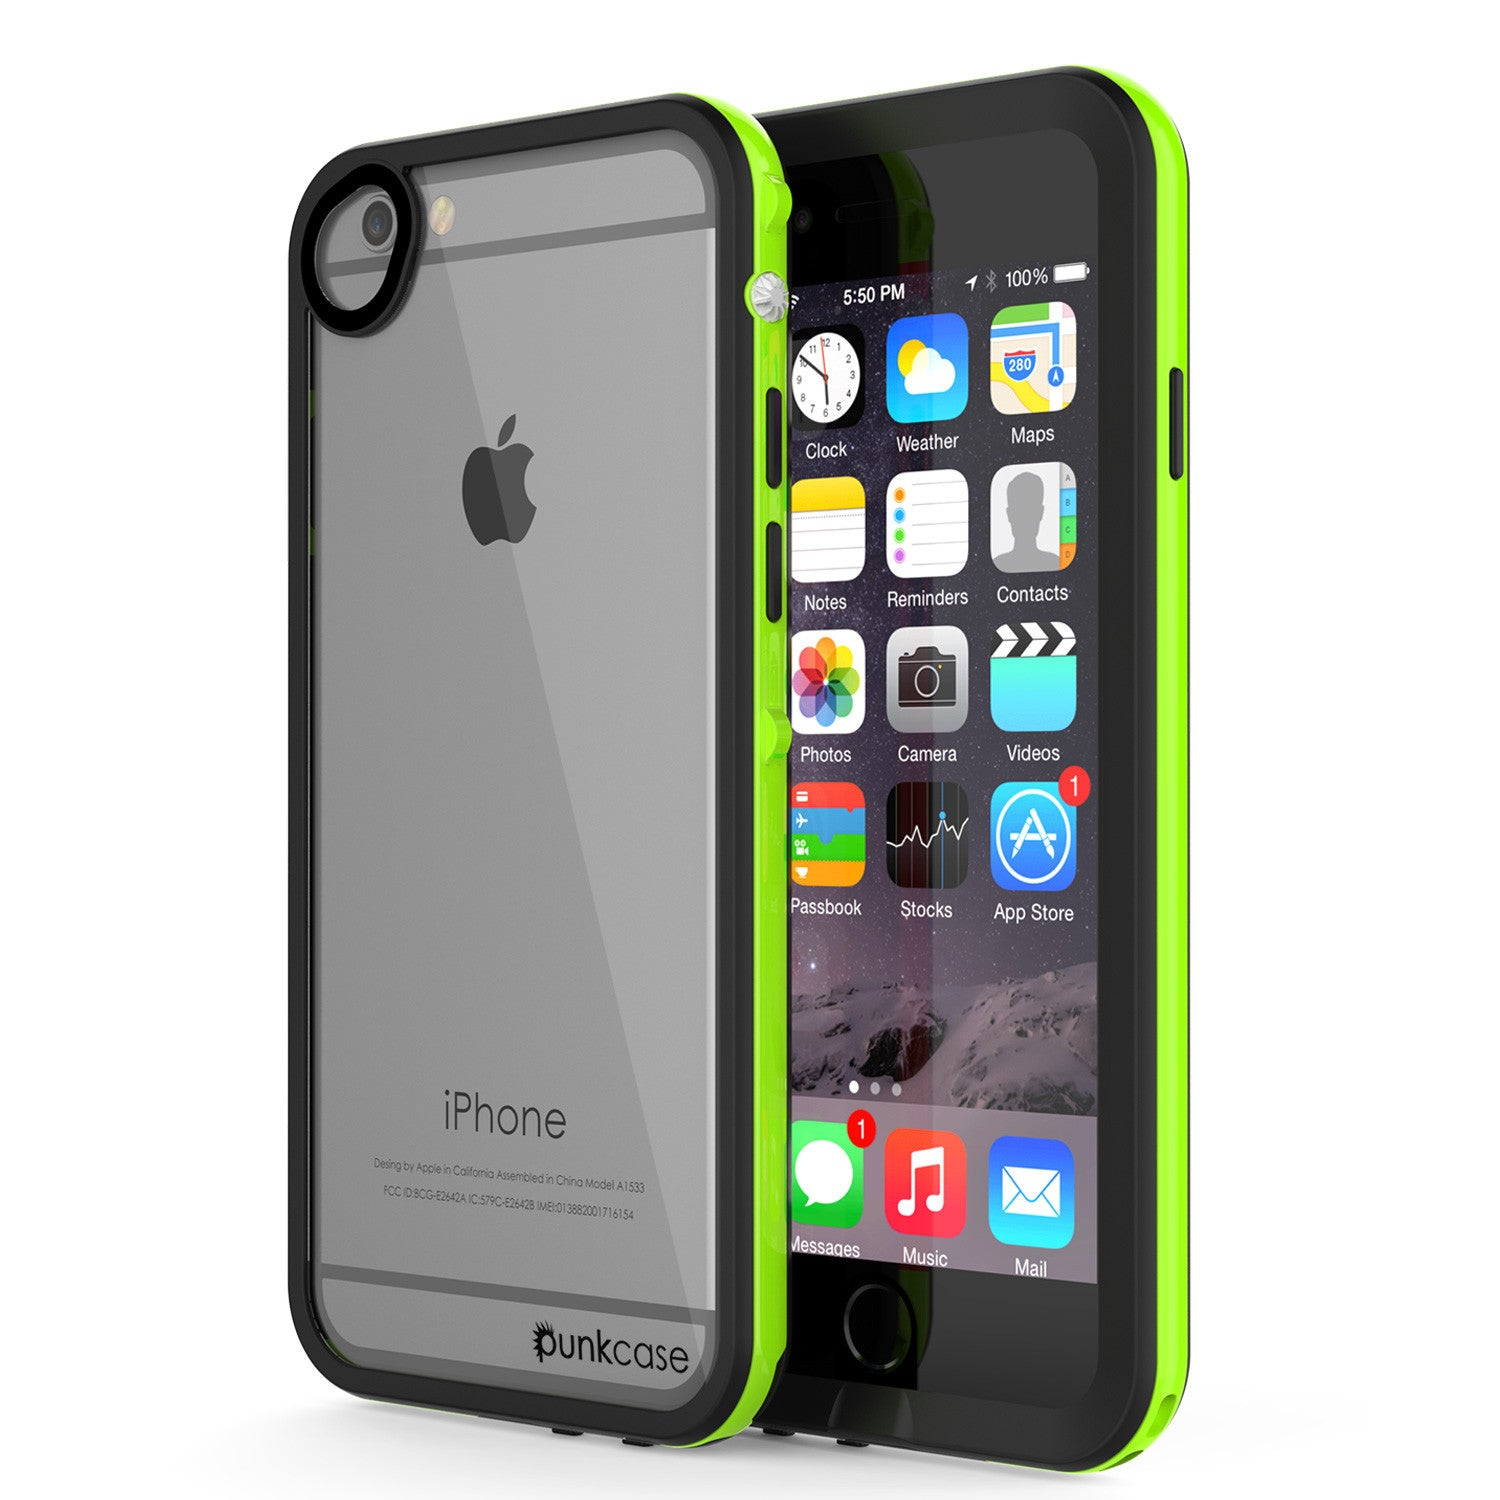 Apple iPhone 7/6s/6 Waterproof Case, PUNKcase CRYSTAL 2.0 Light Green W/ Attached Screen Protector | Warranty